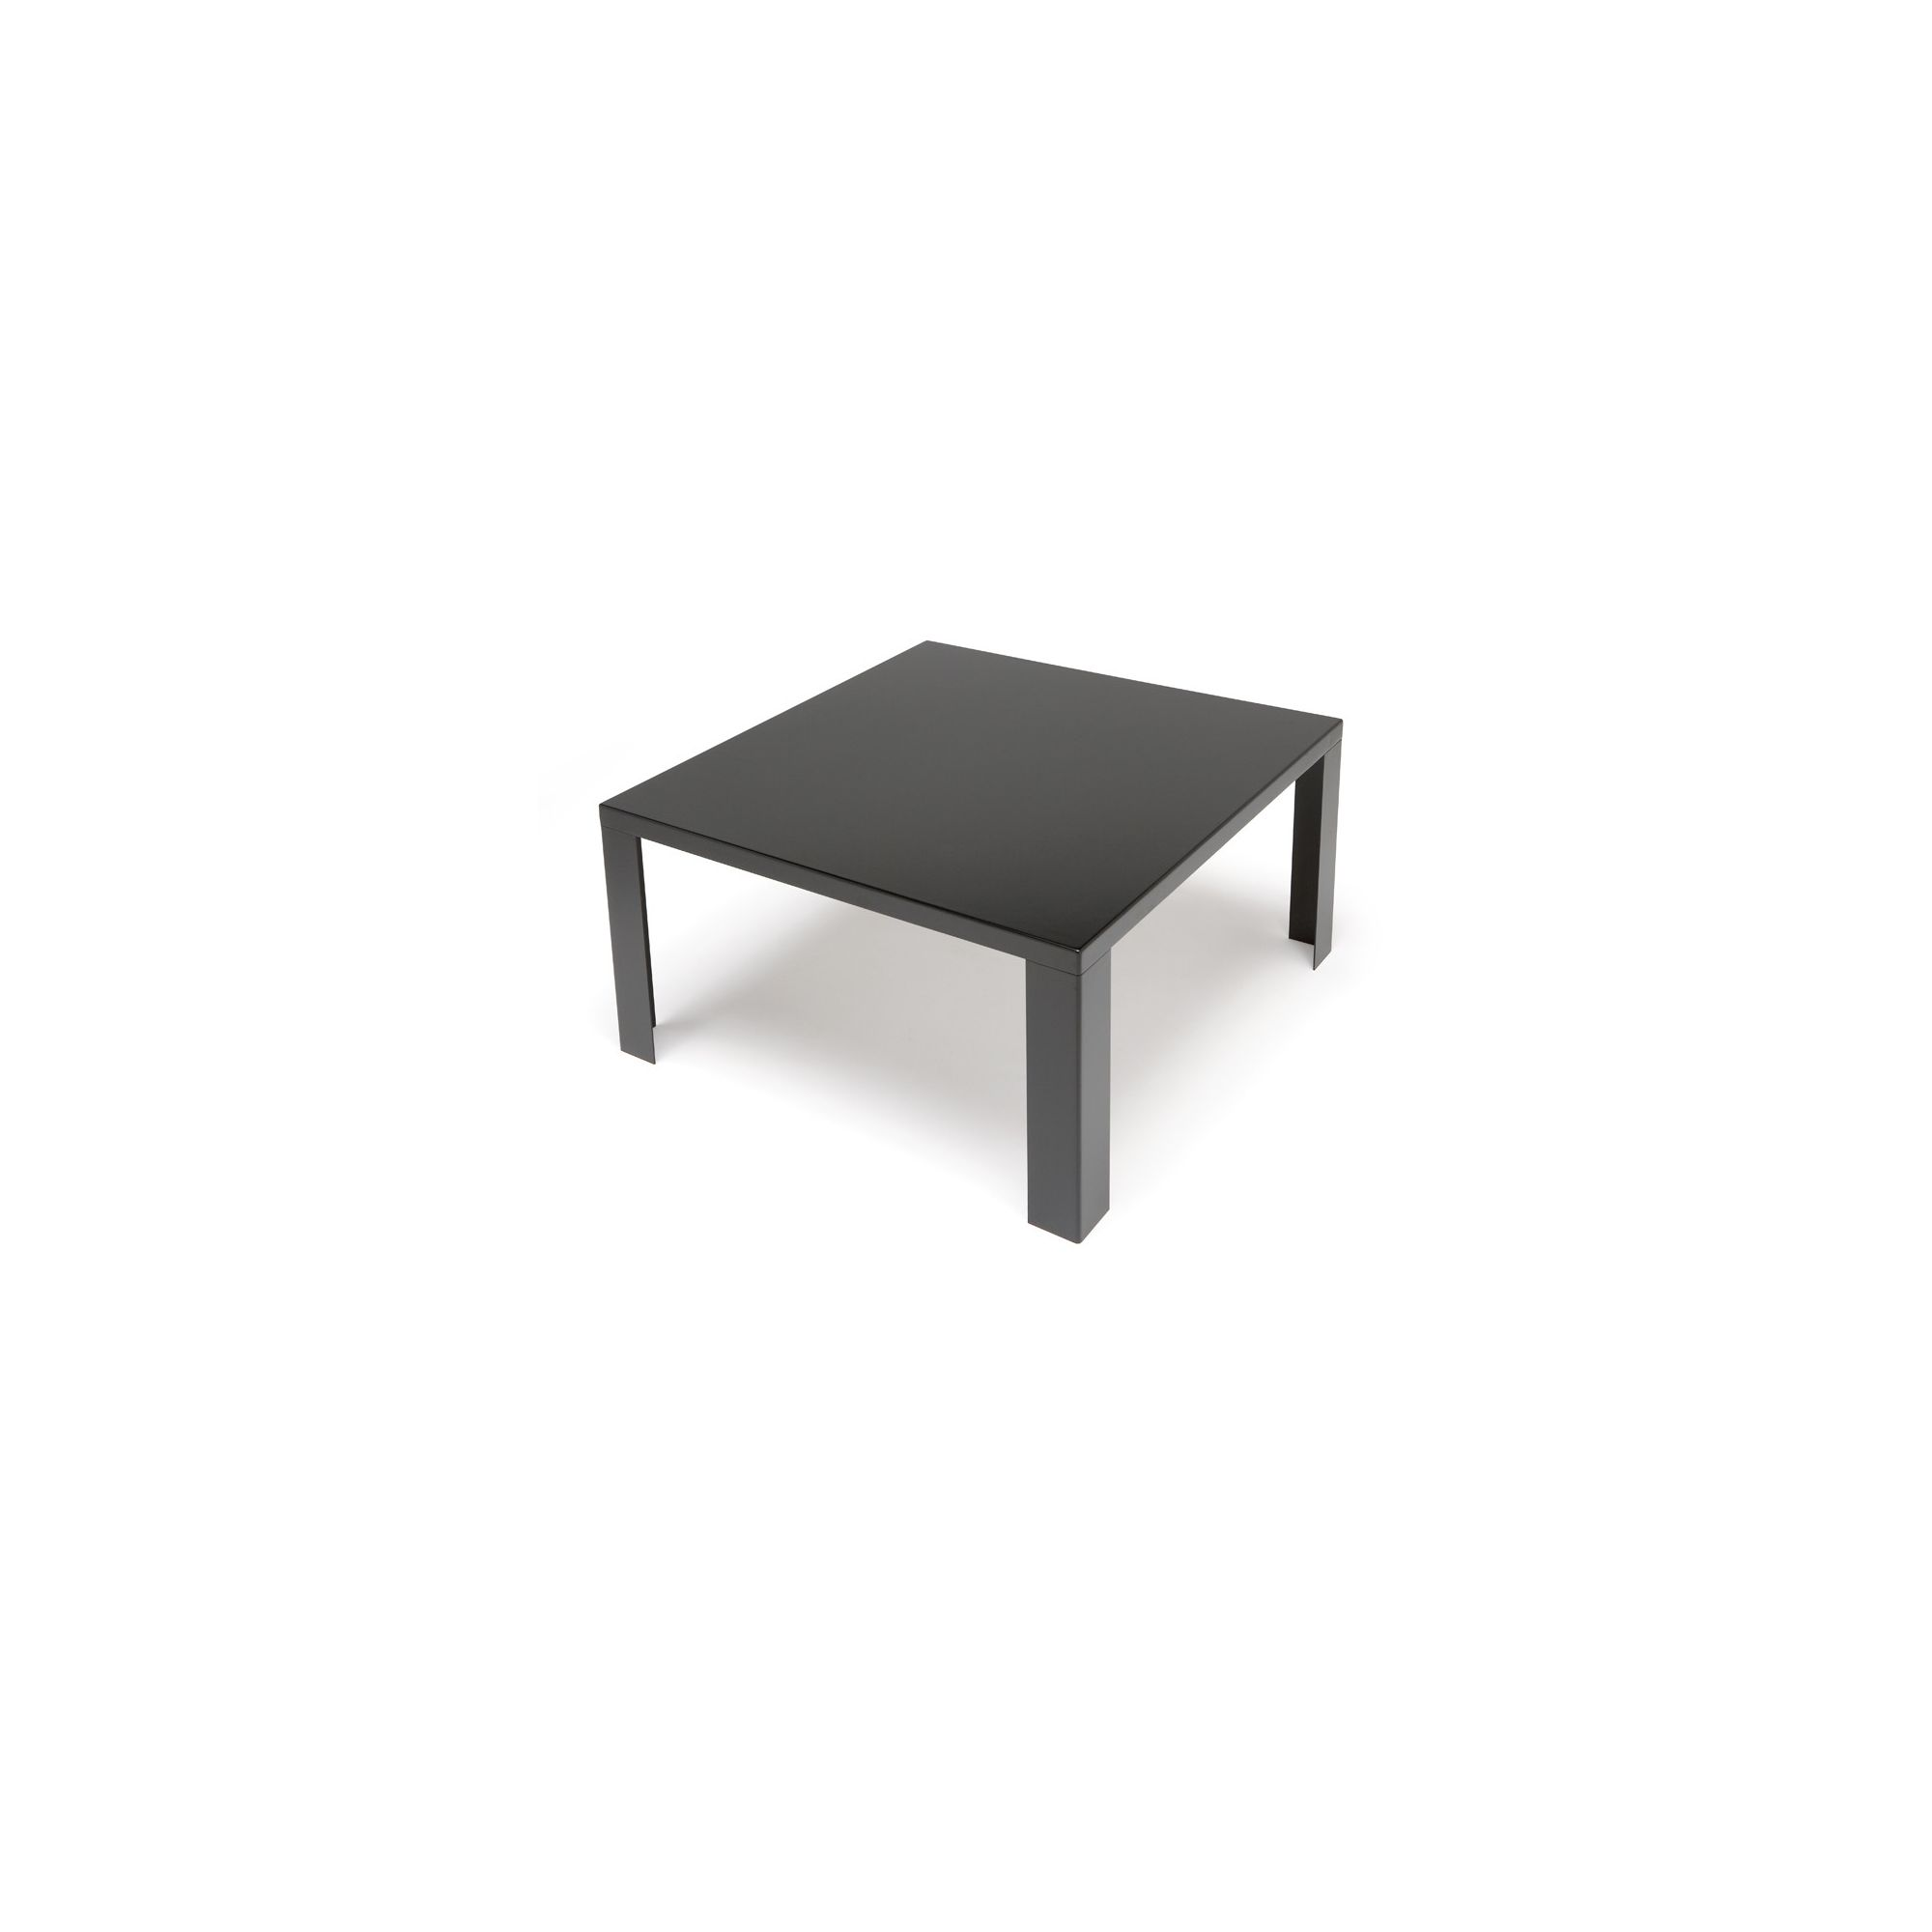 Andreu World Pure Coffee Table - 34cm x 90cm x 90cm - Beige at Tesco Direct